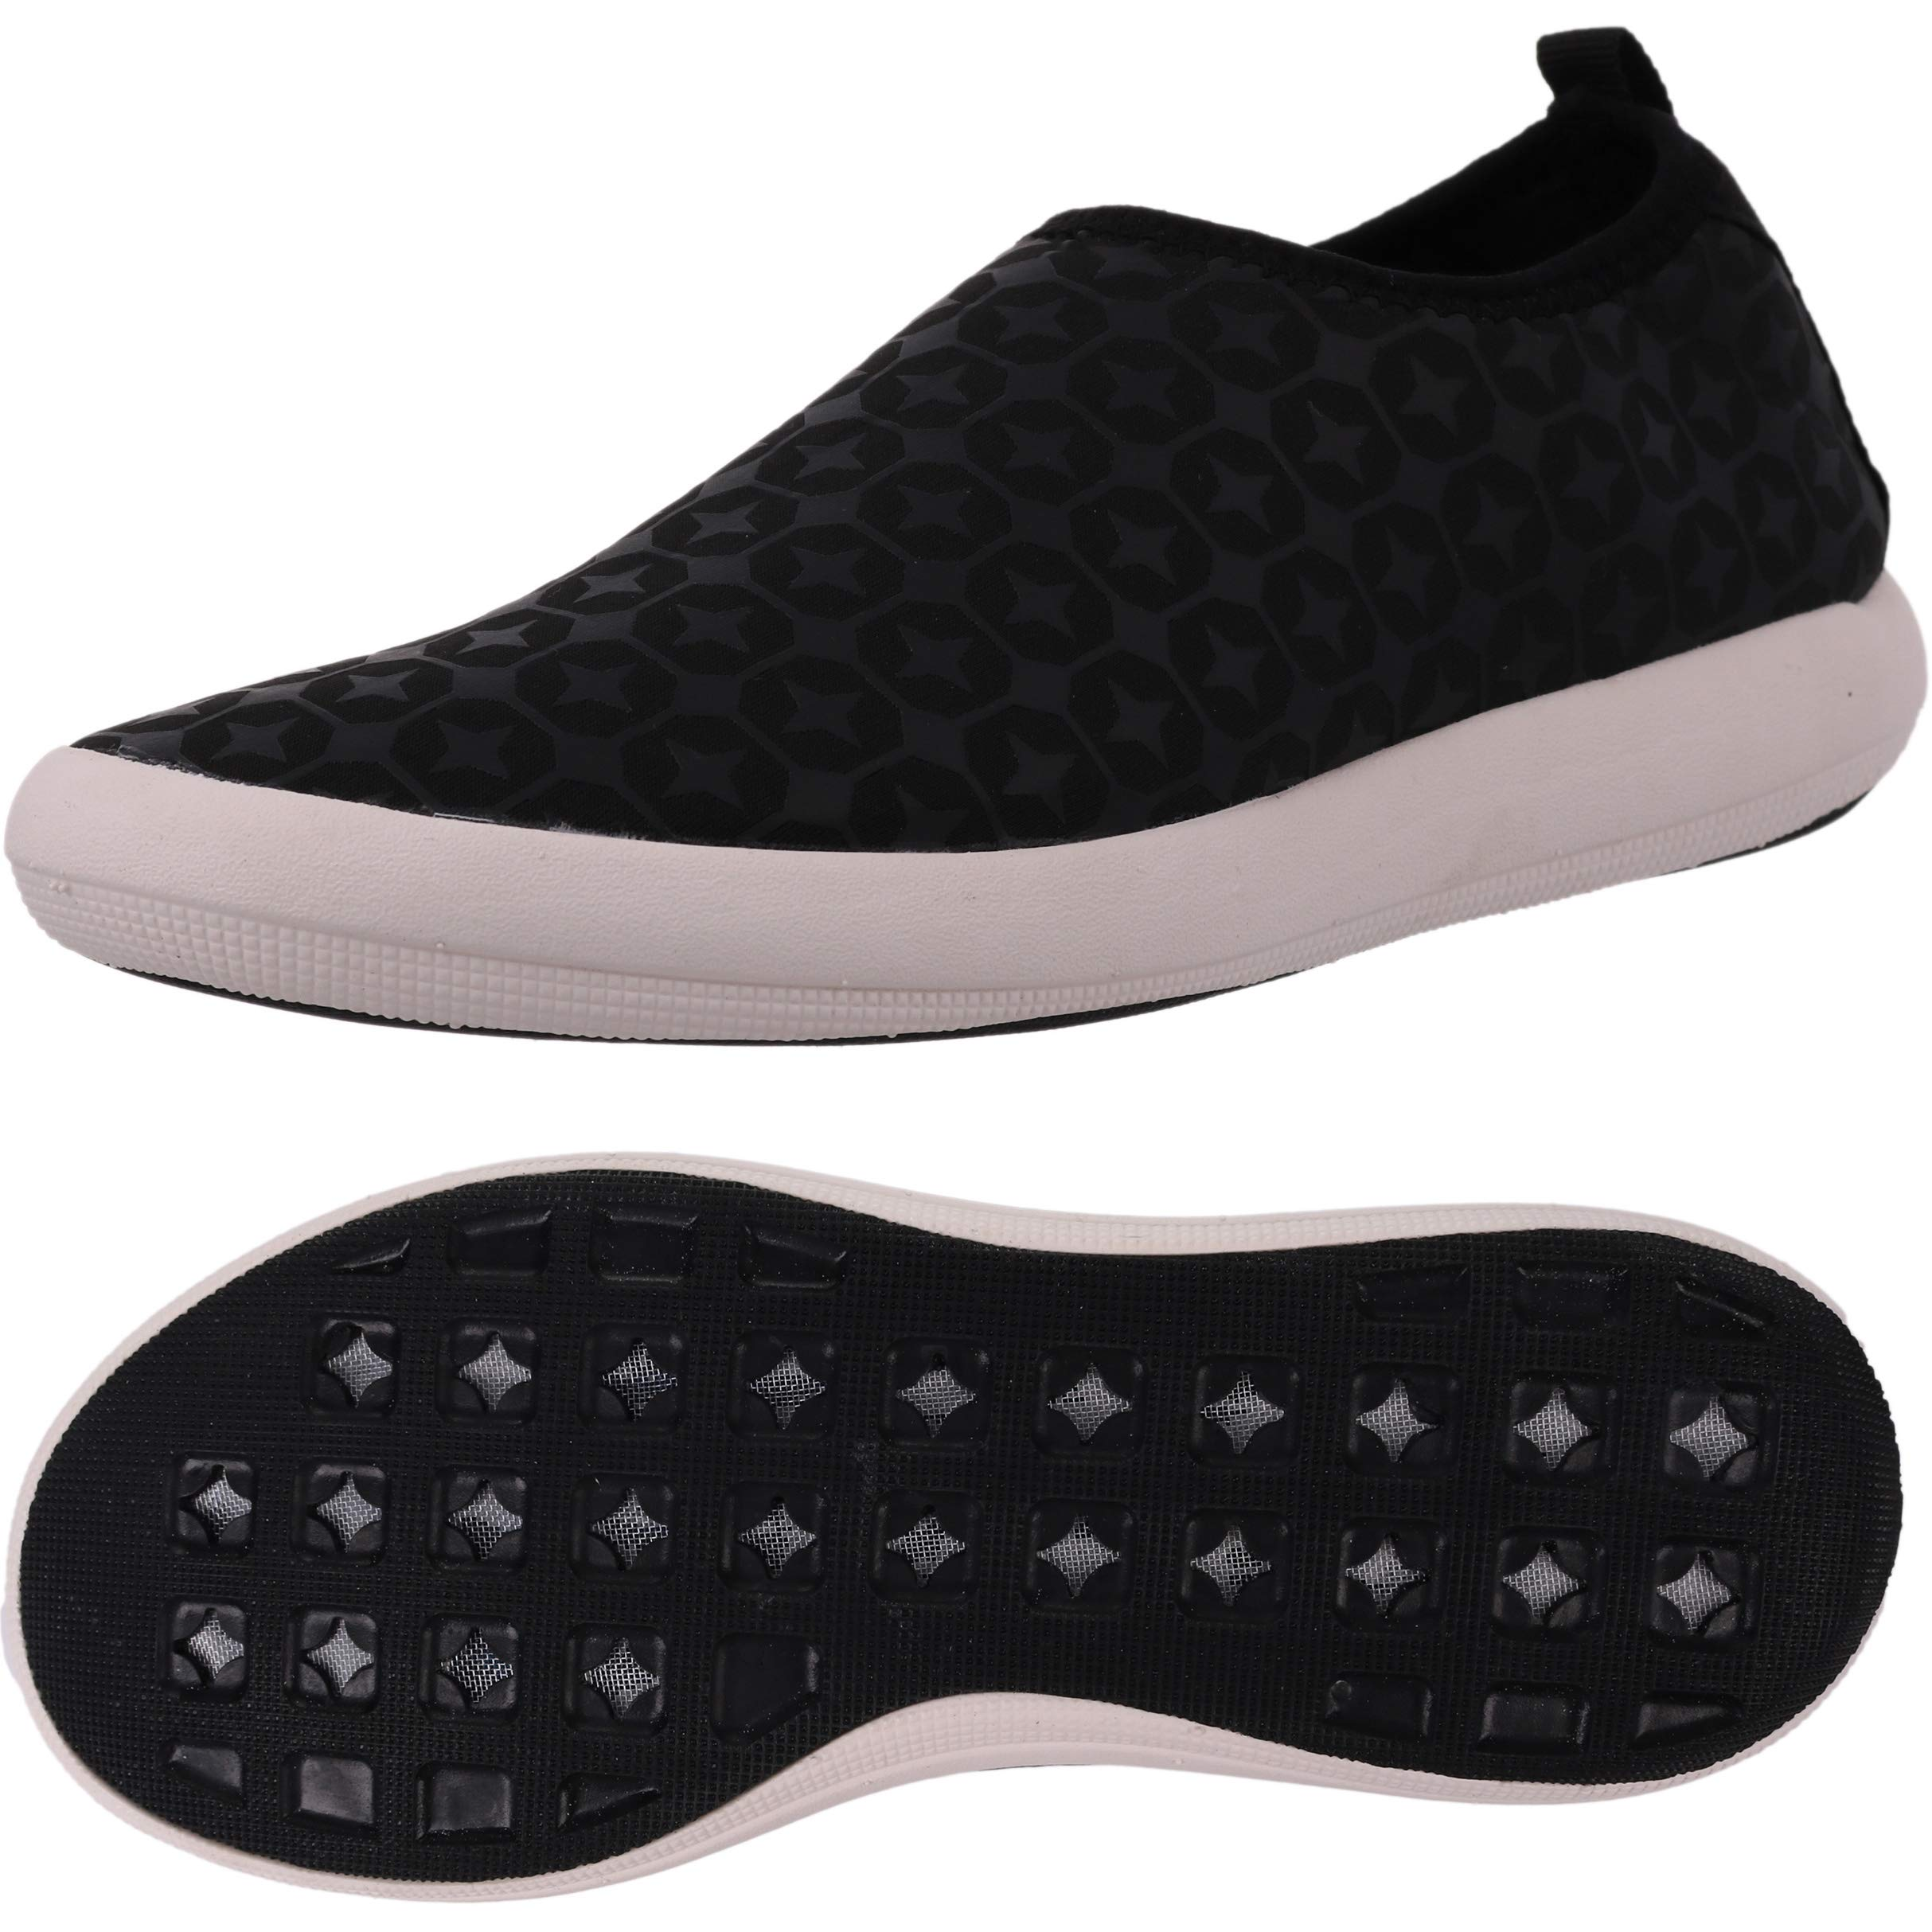 BRONAX Boys Water Shoes Lightweight Slip on Hiking Beach Outdoor Tennis Sneakers for Youth Black Size 5.5